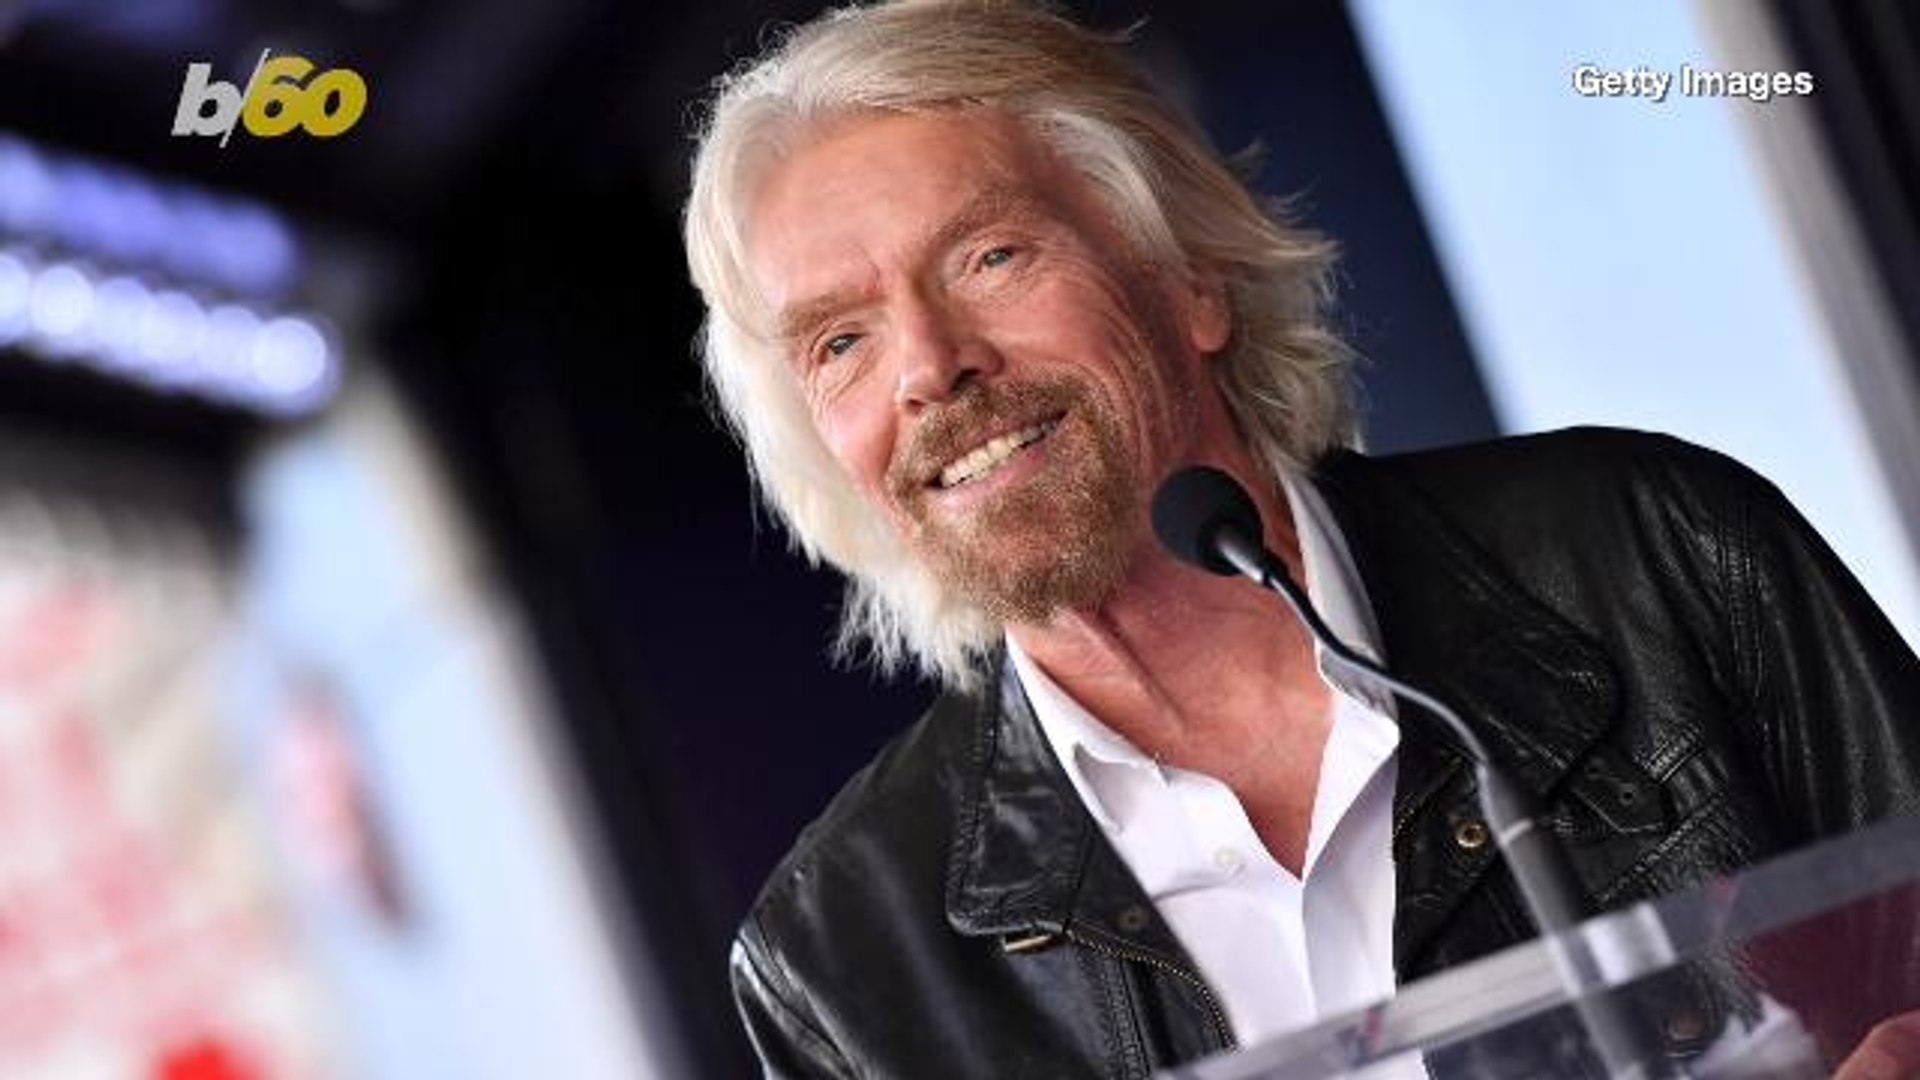 How to Ask For More Vacay Time, According to Richard Branson